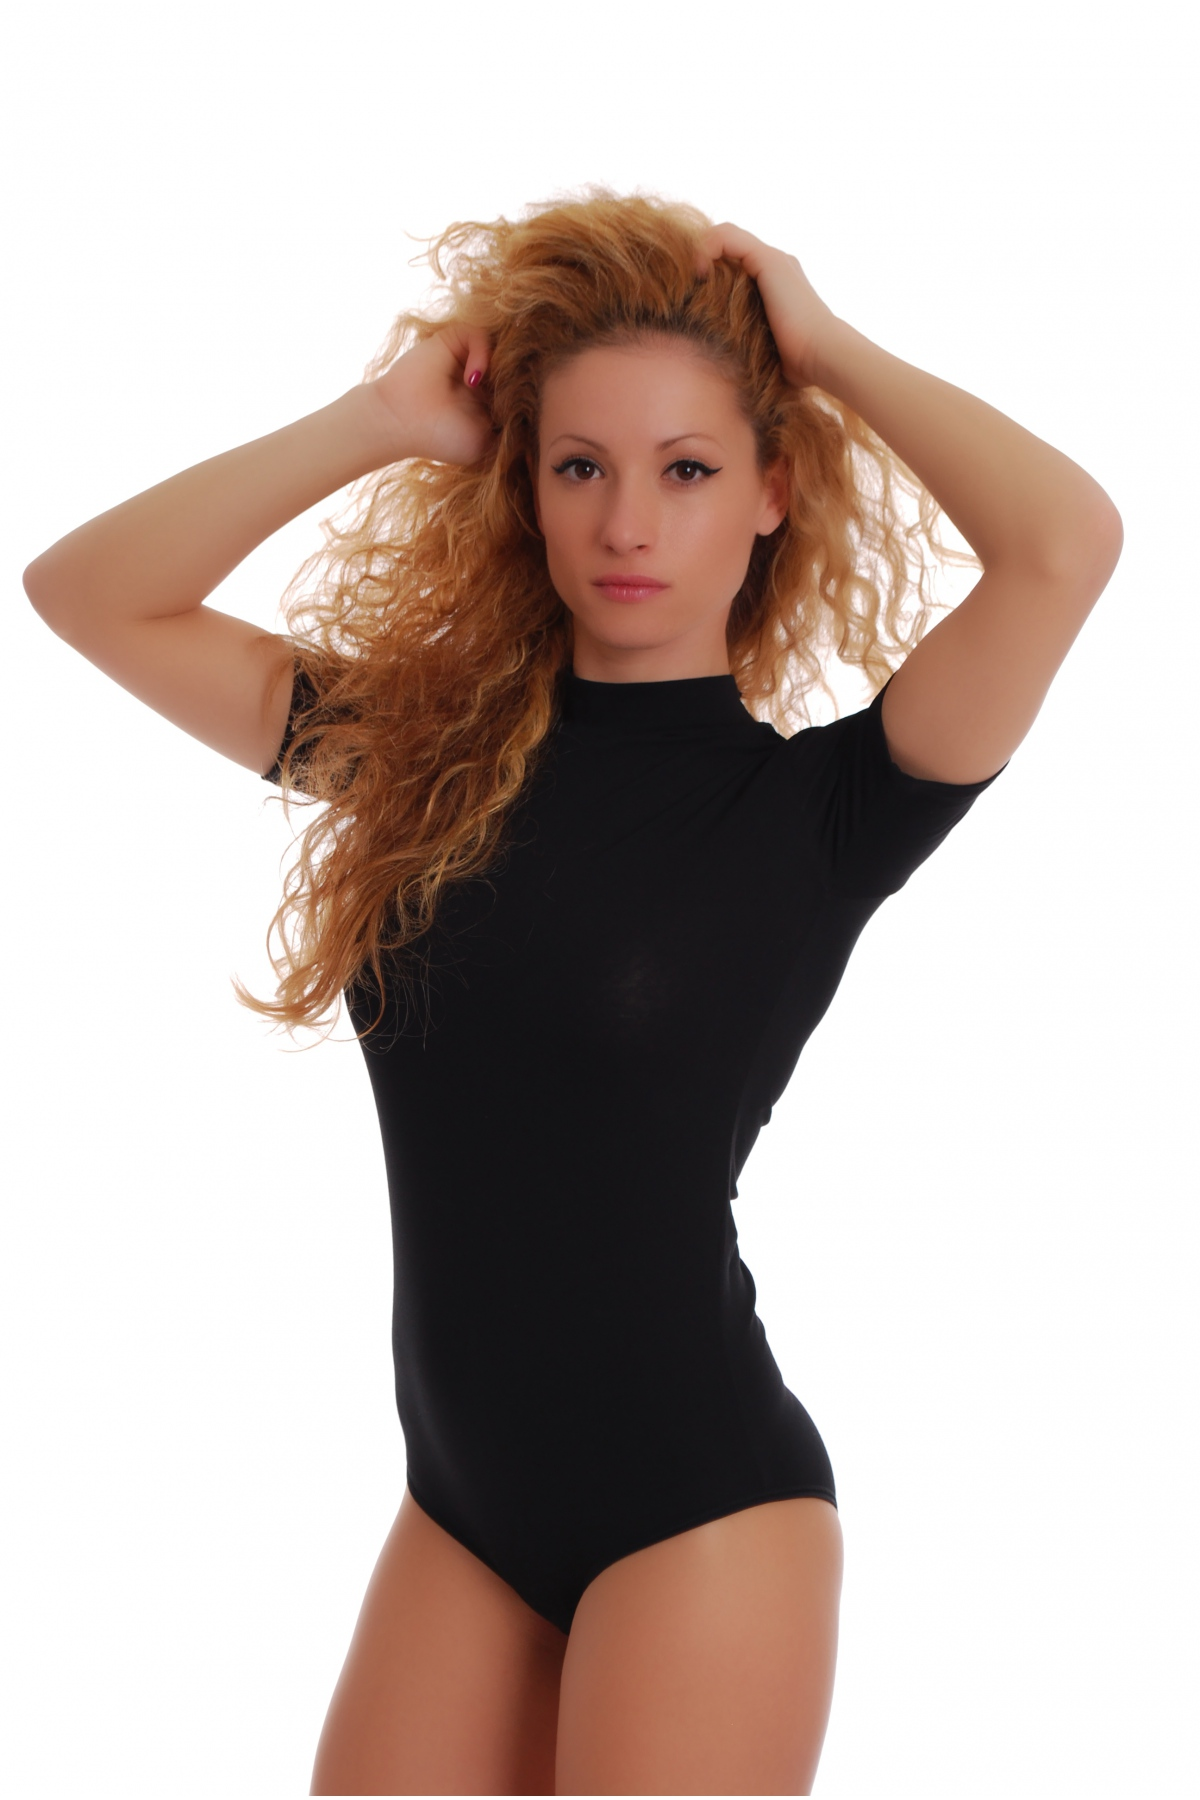 Short Sleeve Scoop Neck Cotton Bodysuit Model is wearing size SMALL. Measurements are 32B x 24 x 34 and height is 5' 9